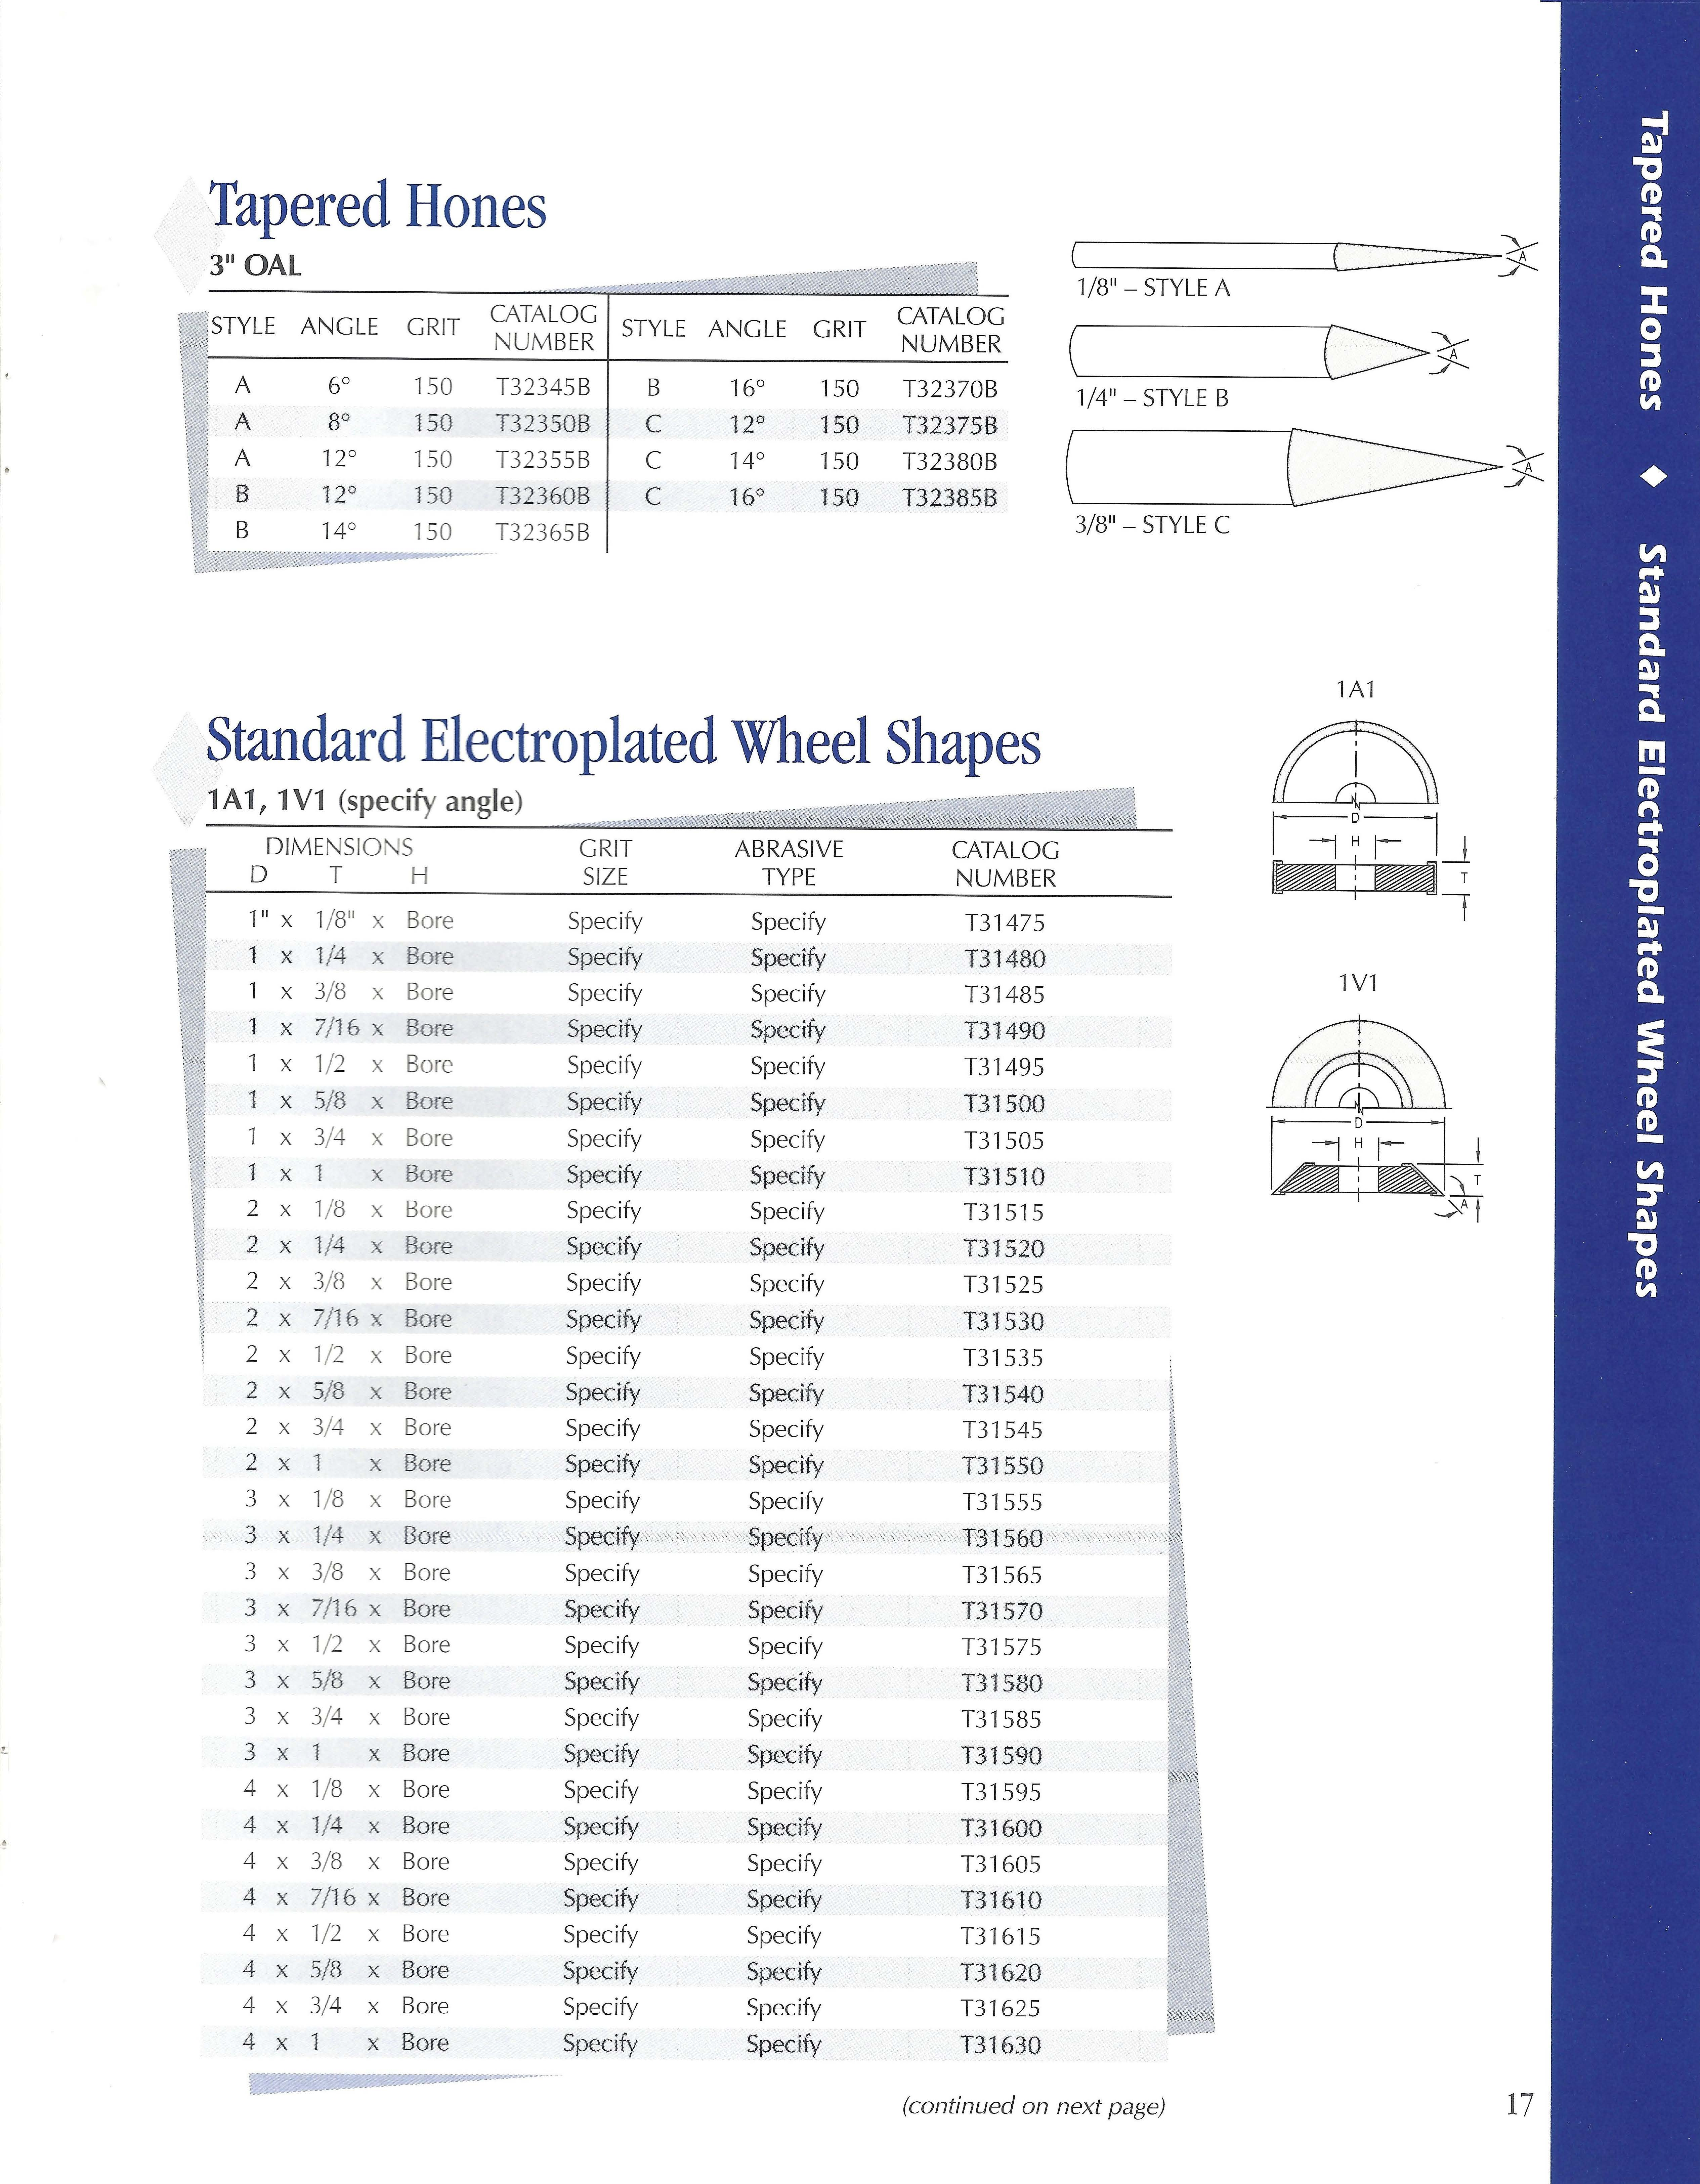 catalog-in-pdf-combined-page-17-image-0001.jpg